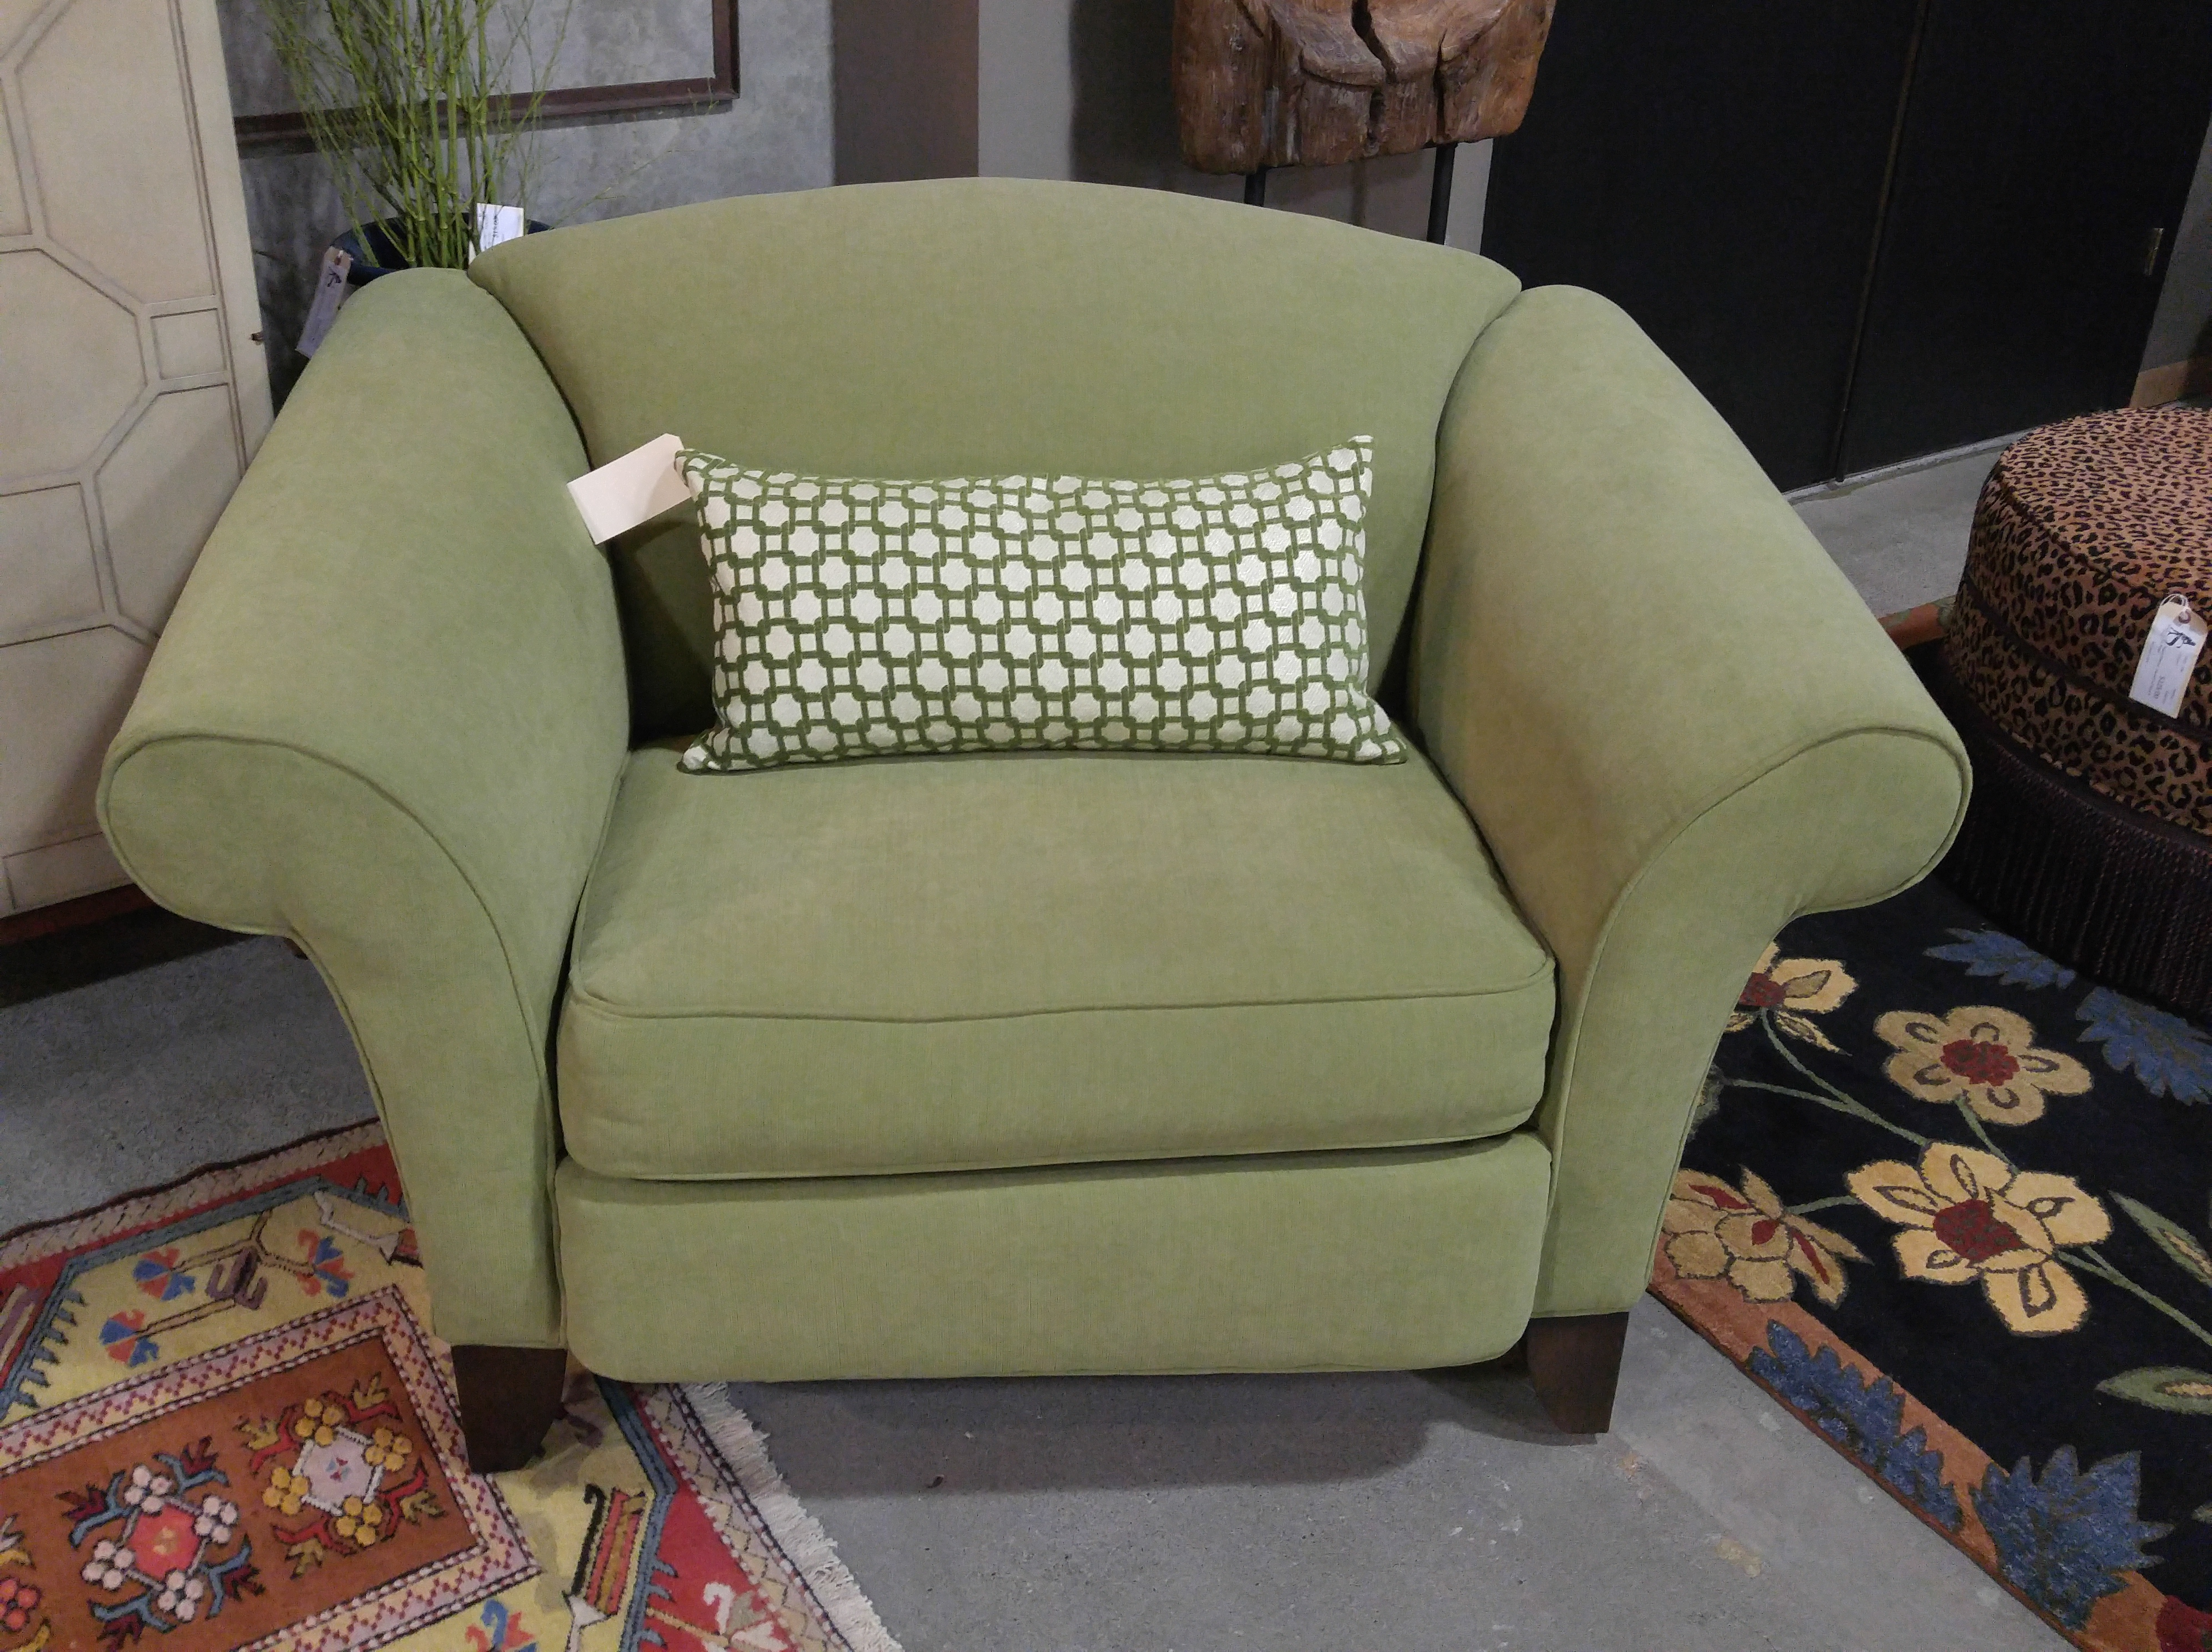 Charmant A Cozy Chair For Two Or A Spacious Reading Nook Option, Snuggle Up In This  Lime Green Brushed Canvas Oversized Chair With Rolled Arms And  Espresso Stained ...